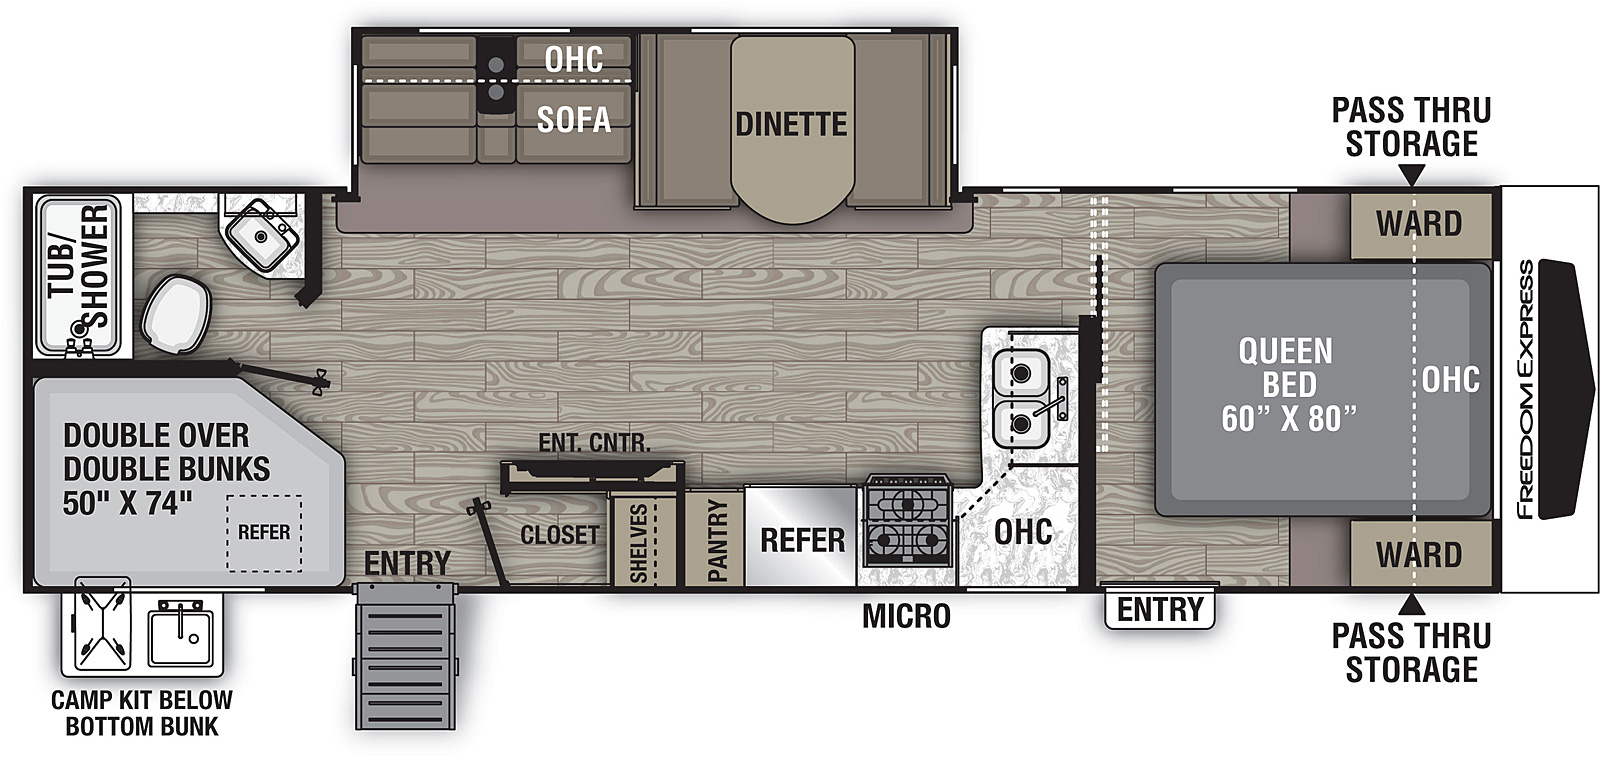 Floorplan for Freedom Express Ultra Lite Travel Trailers model 287 BHDS